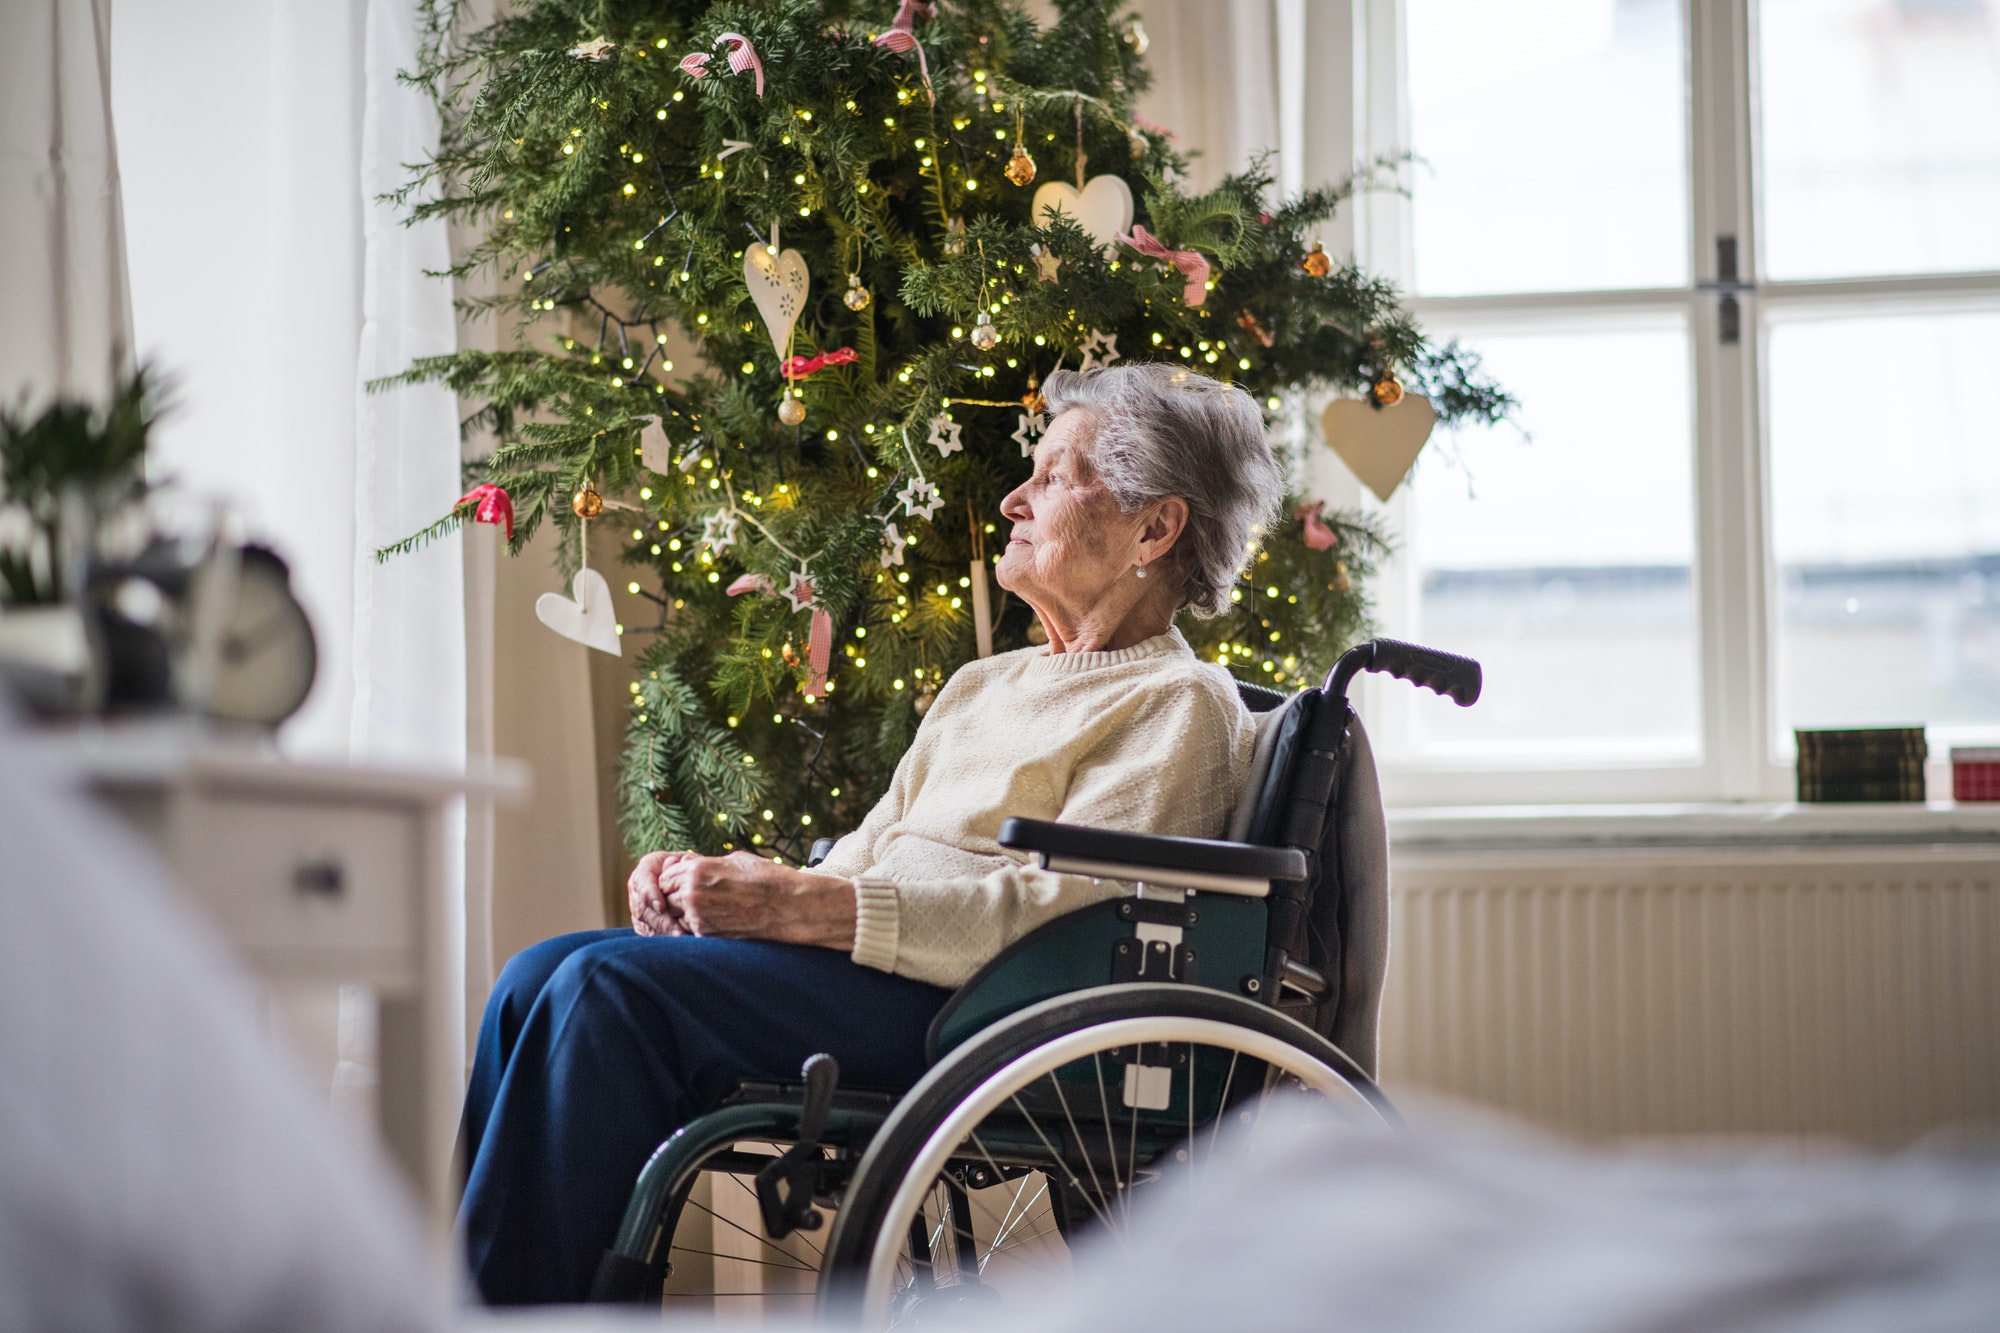 A senior woman in wheelchair at home at Christmas time.